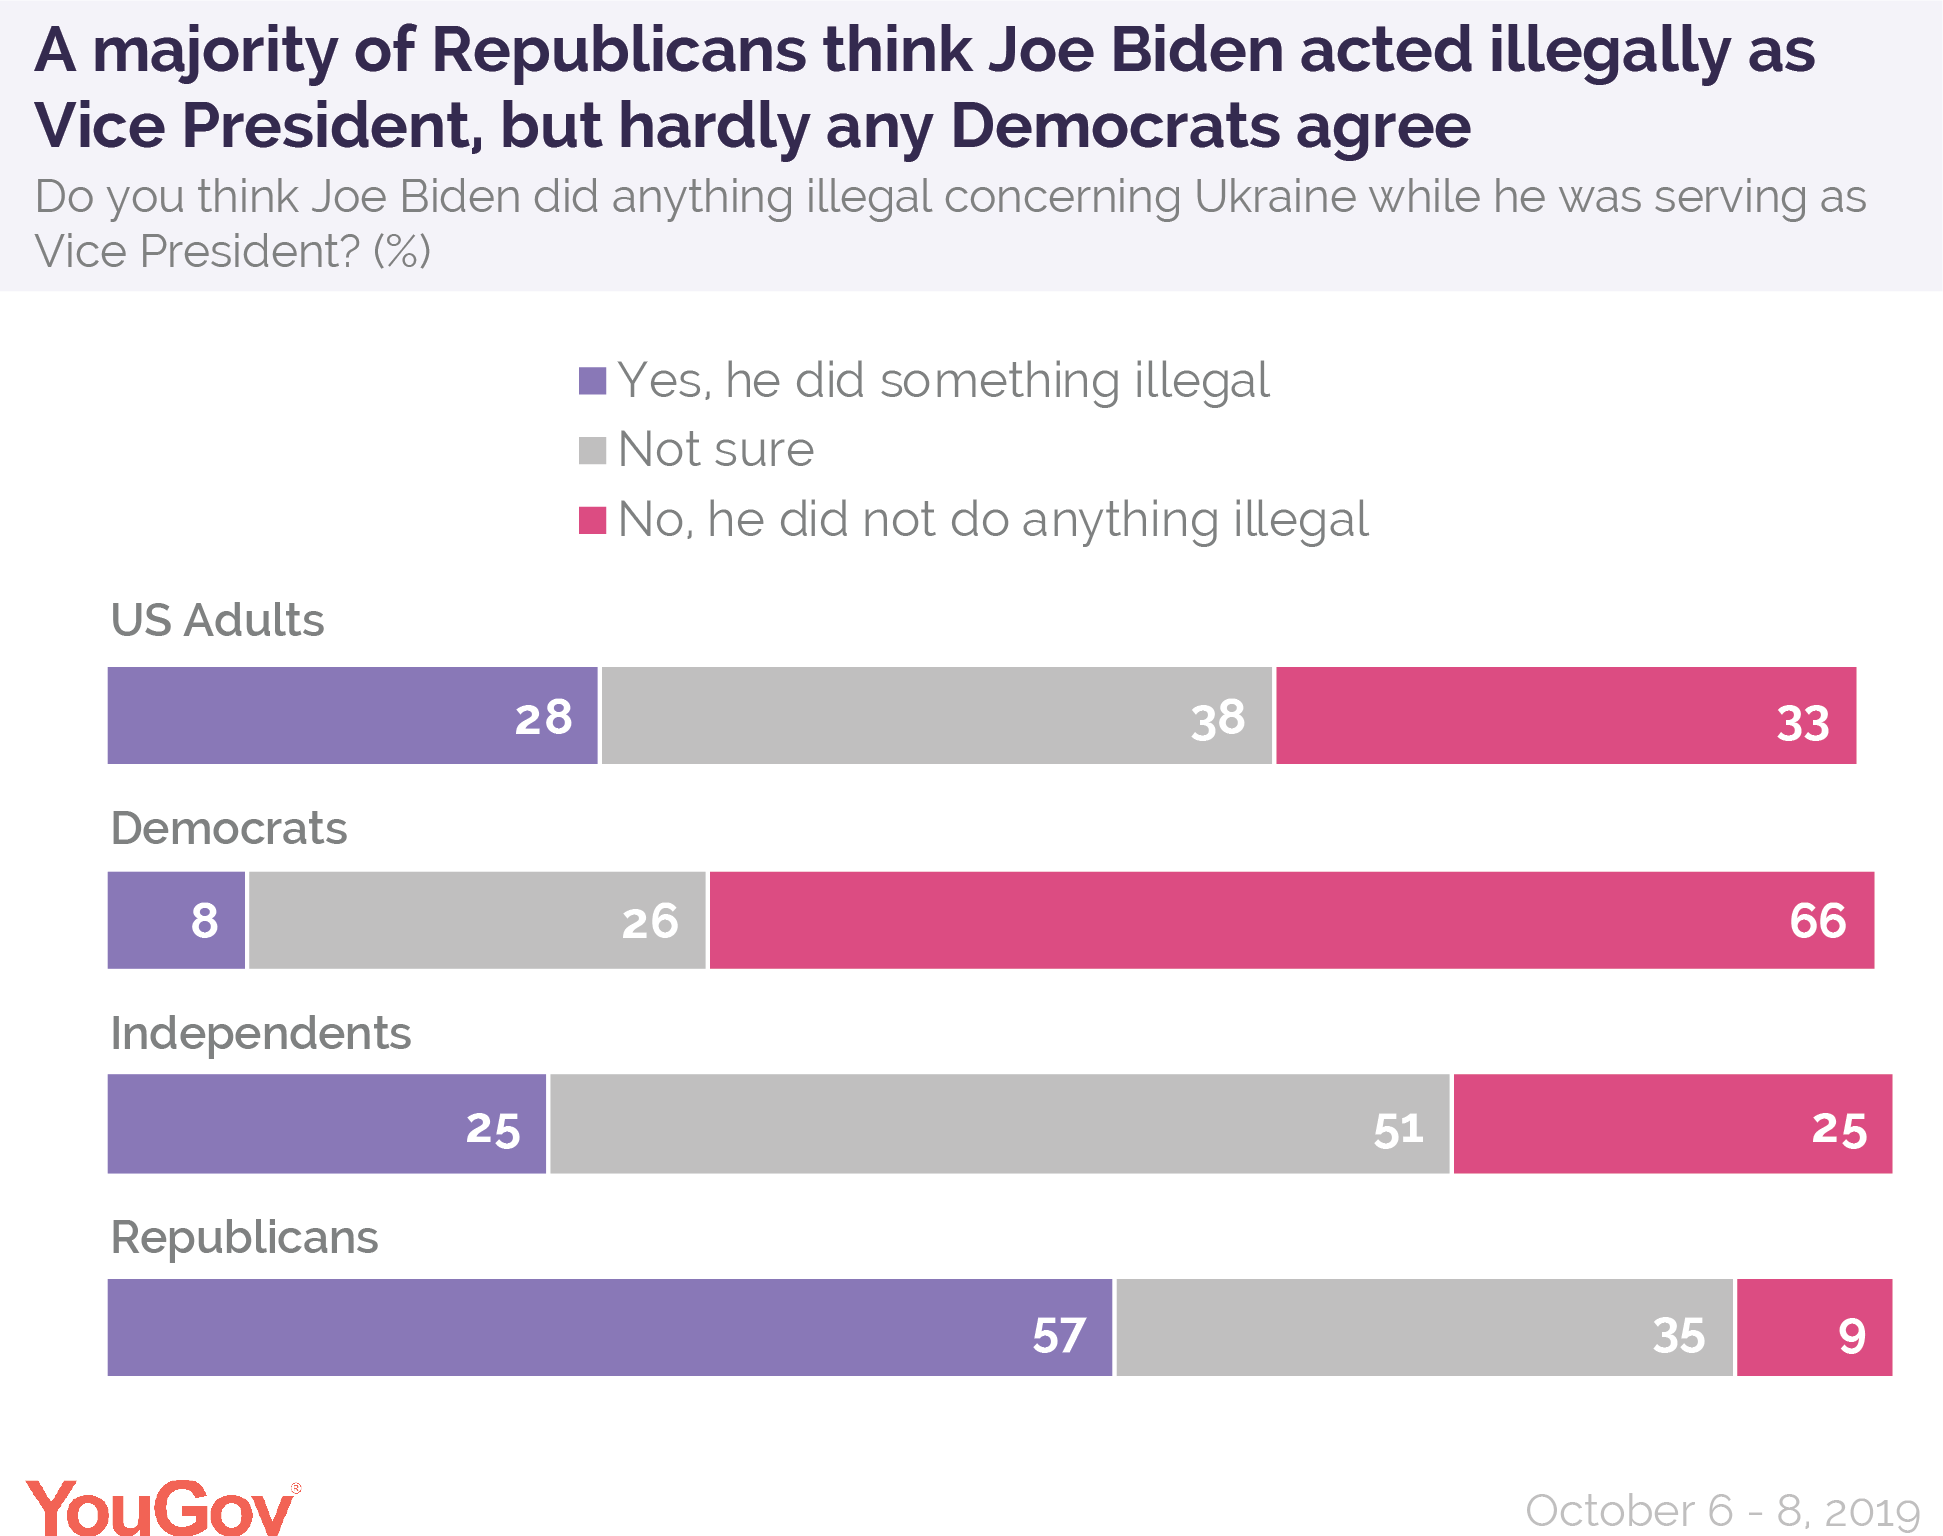 A majority of Republicans think Joe Biden acted illegally as Vice Presidenet, but hardly any Democrats agree